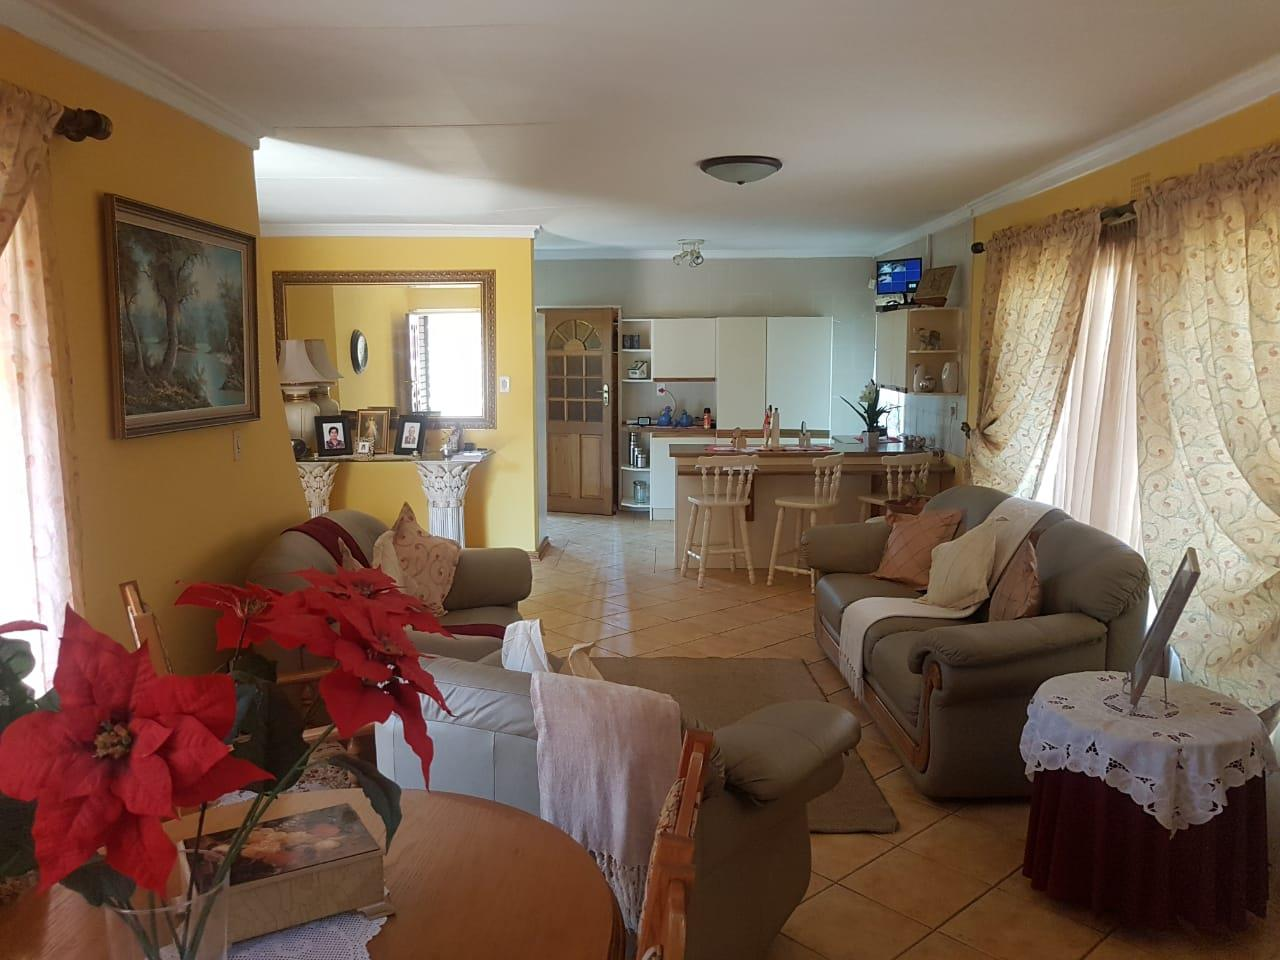 4 Bedroom House For Sale in Linmeyer